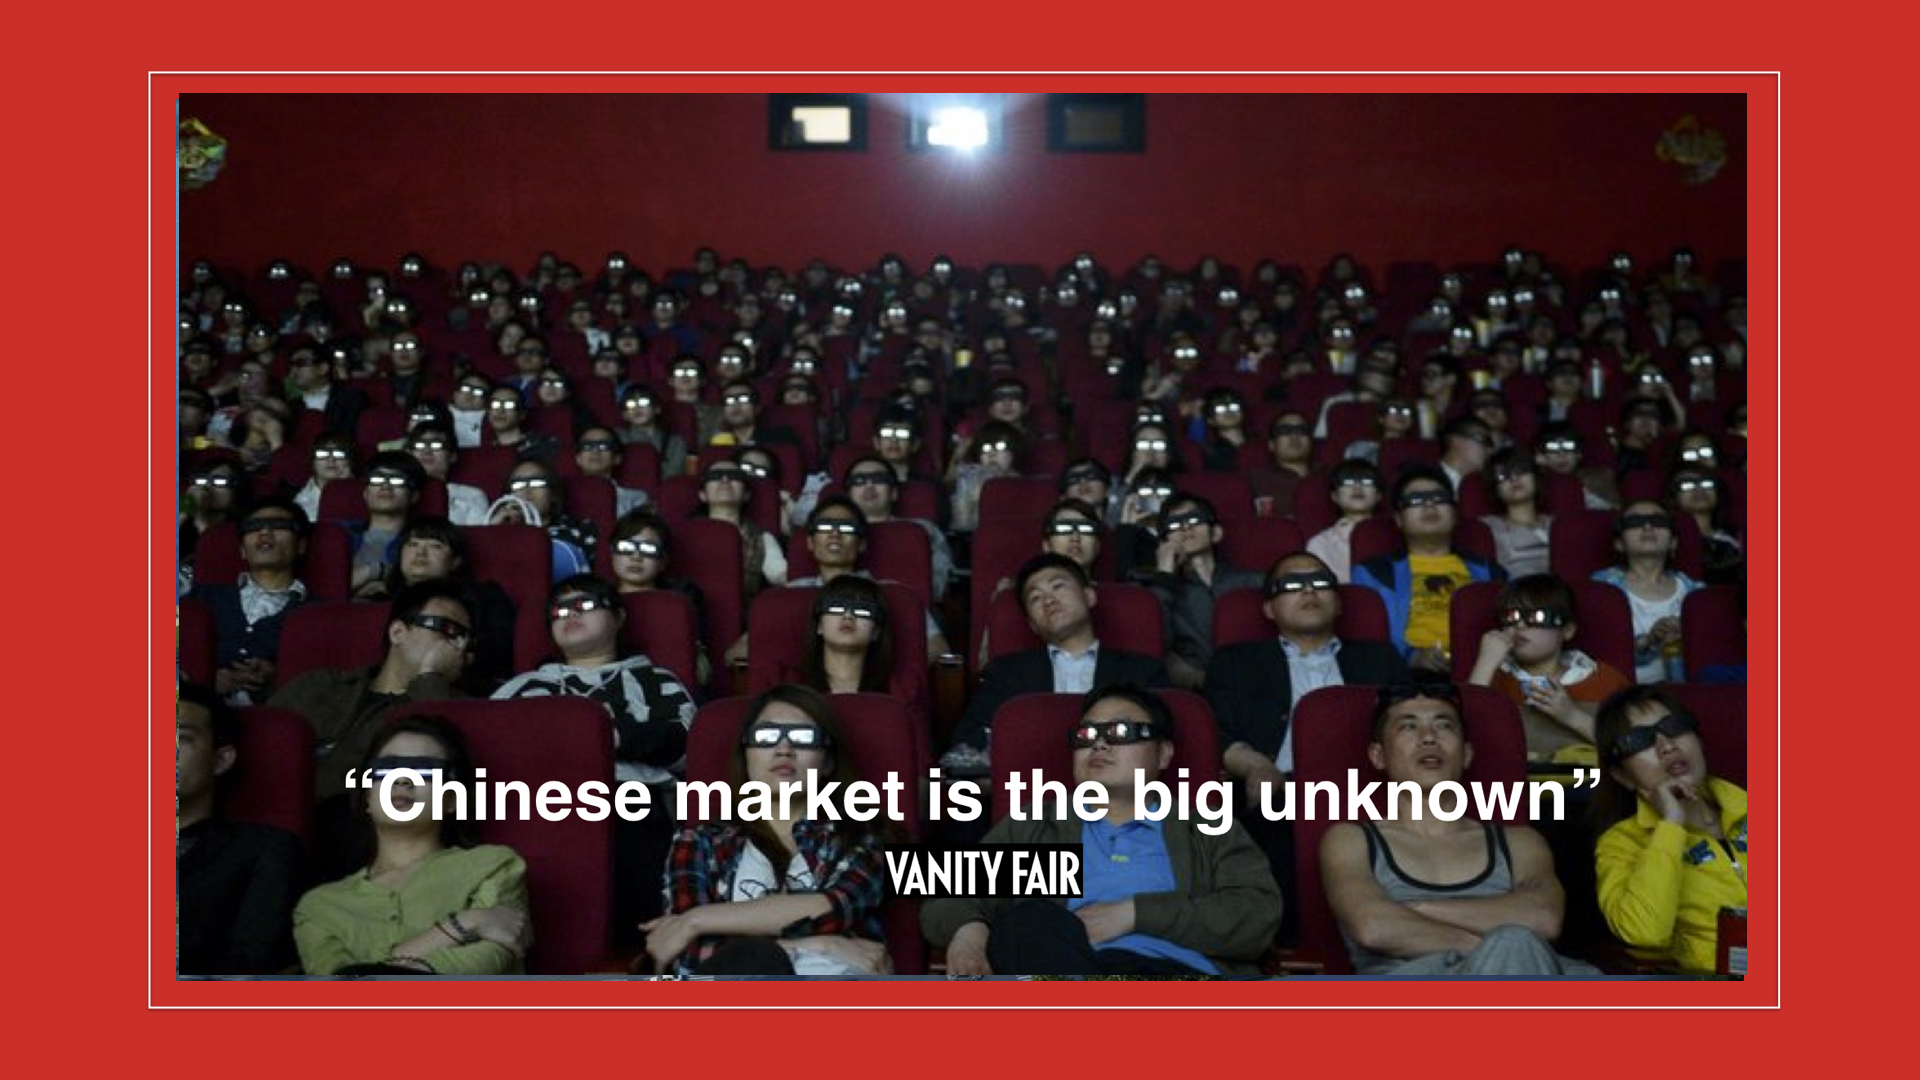 The cinematic industry in China is still immature, and appears to most as unstable and uncertain